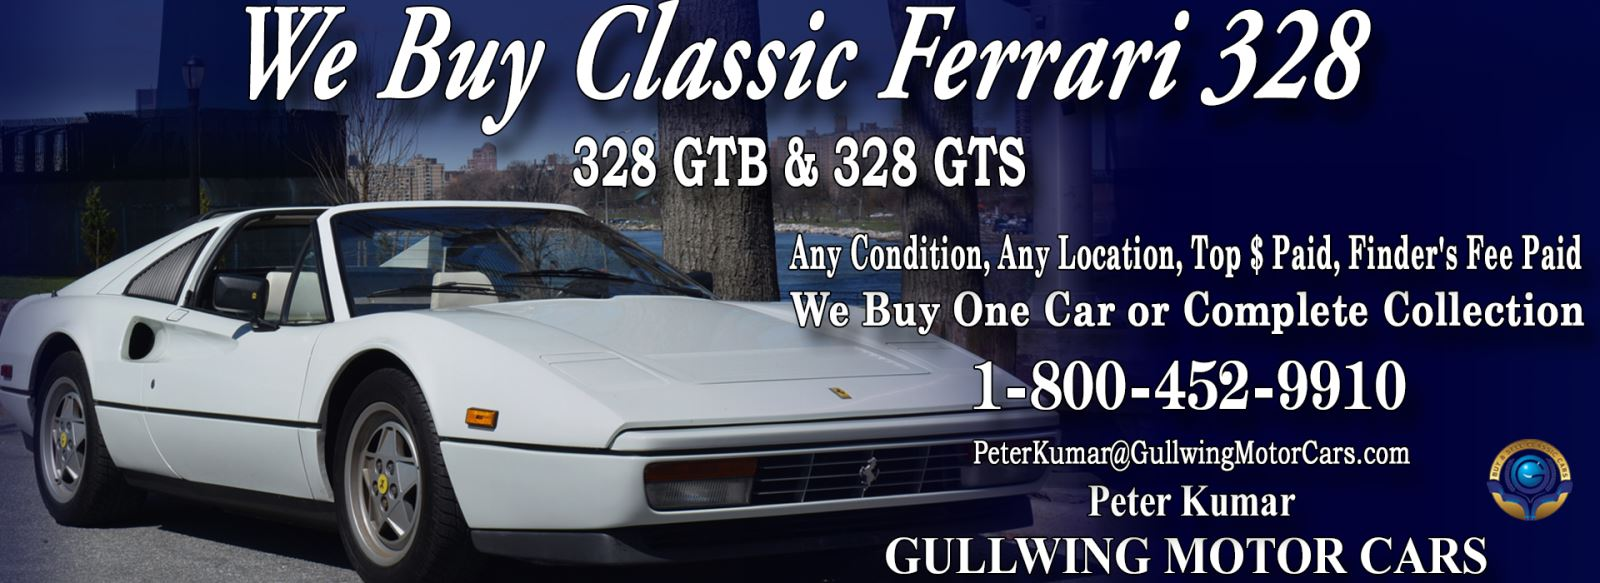 Classic Ferrari 328 GTB, 328GTS, 328GT4, 328GTBi, or 328GTSi for sale, we buy vintage Ferrari 328 GTB, 328GTS, 328GT4, 328GTBi, or 328GTSi. Call Peter Kumar. Gullwing Motor